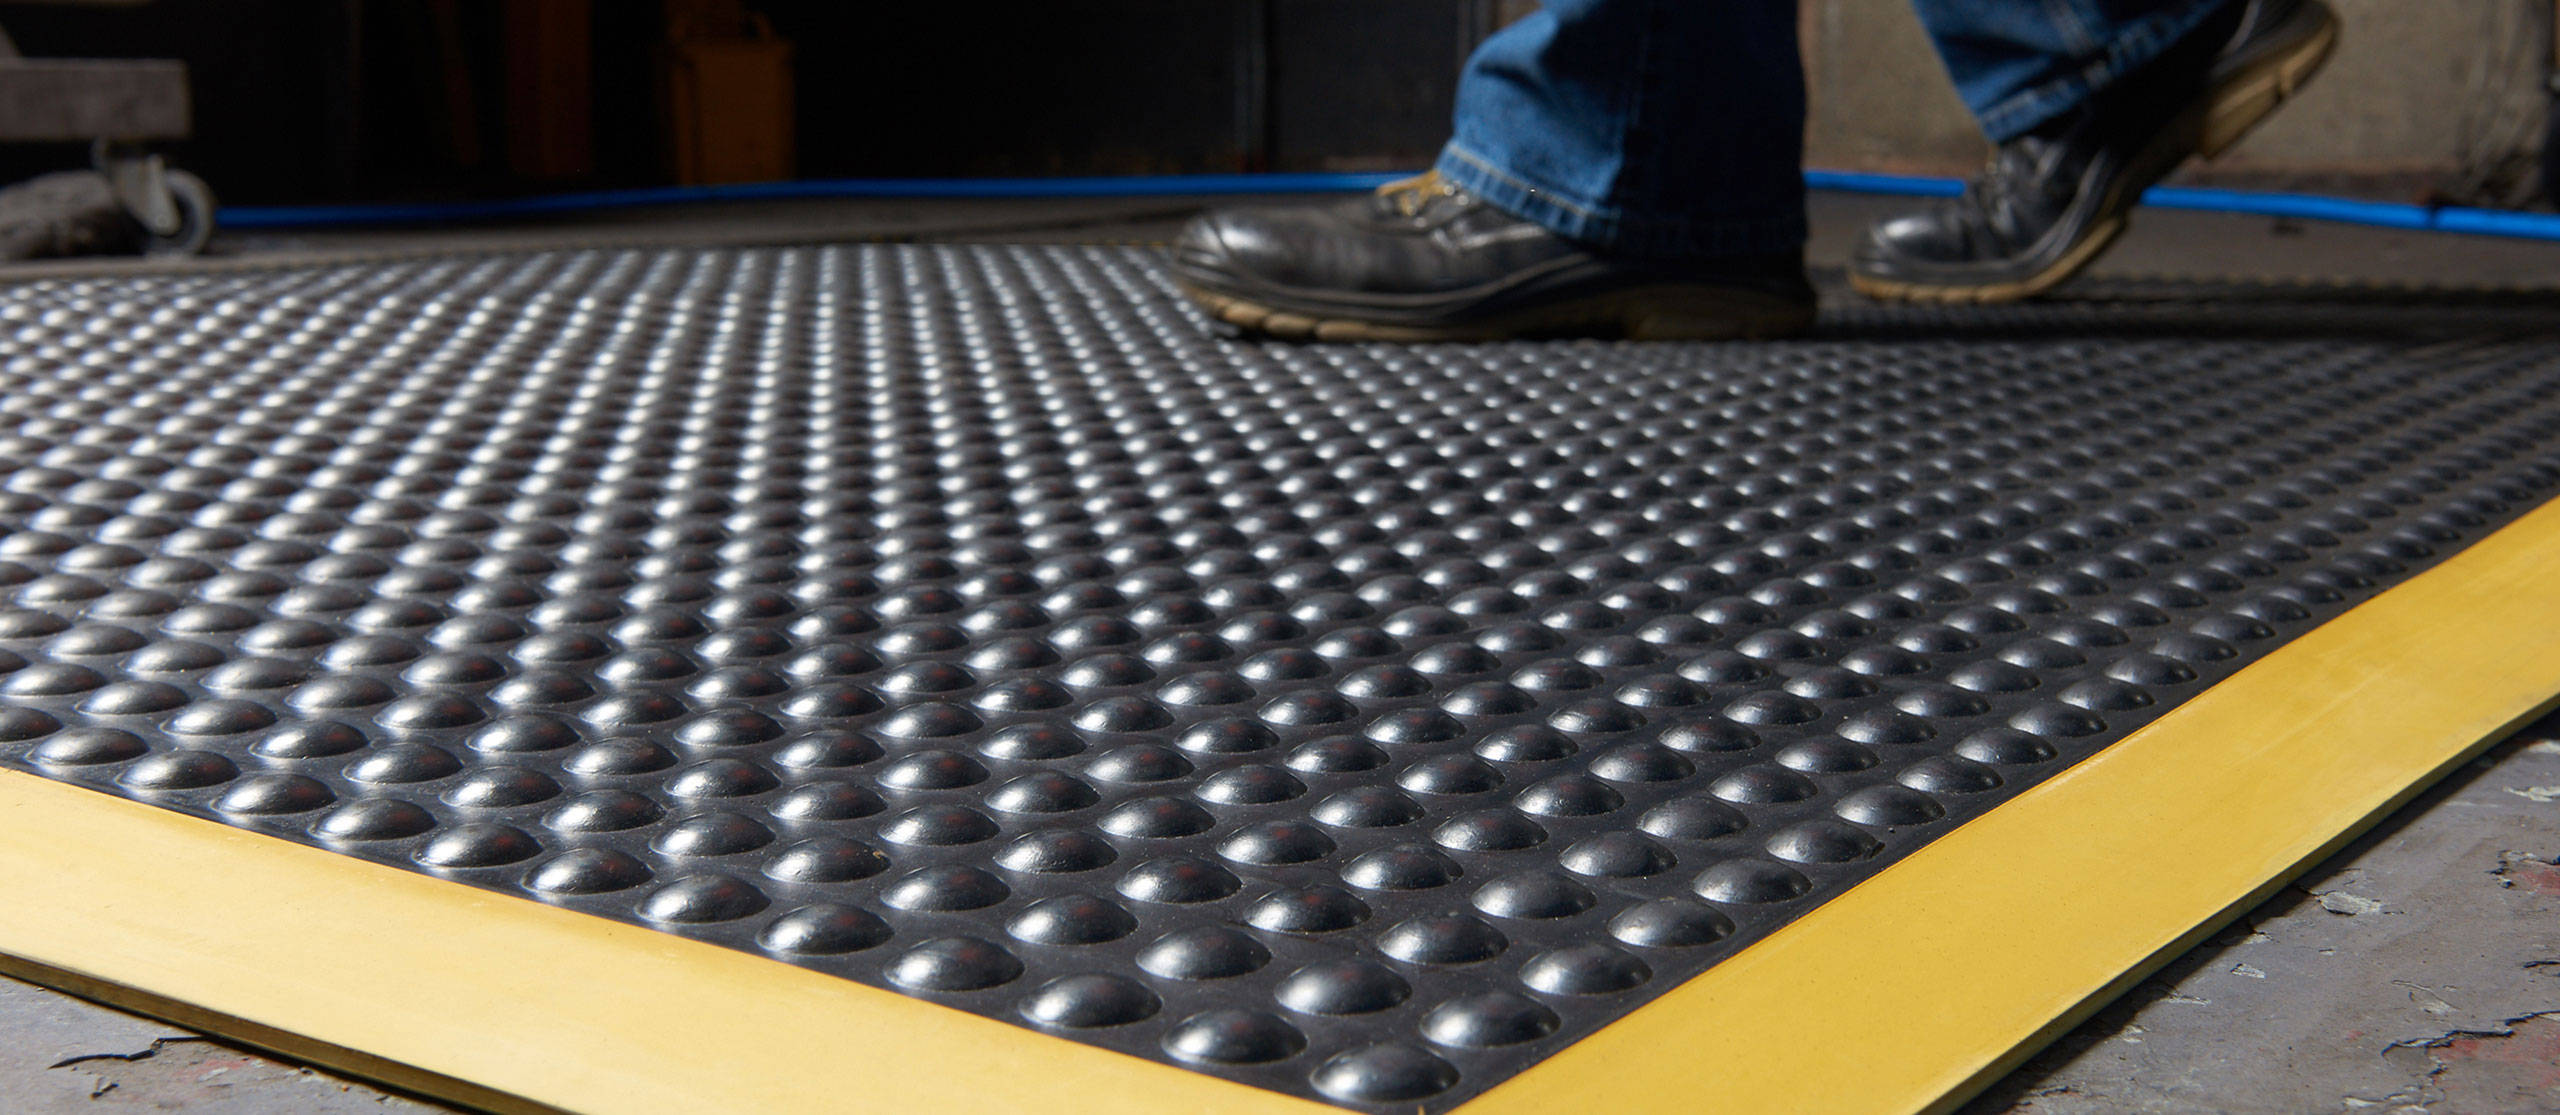 Specialists in floor matting and floor safety products